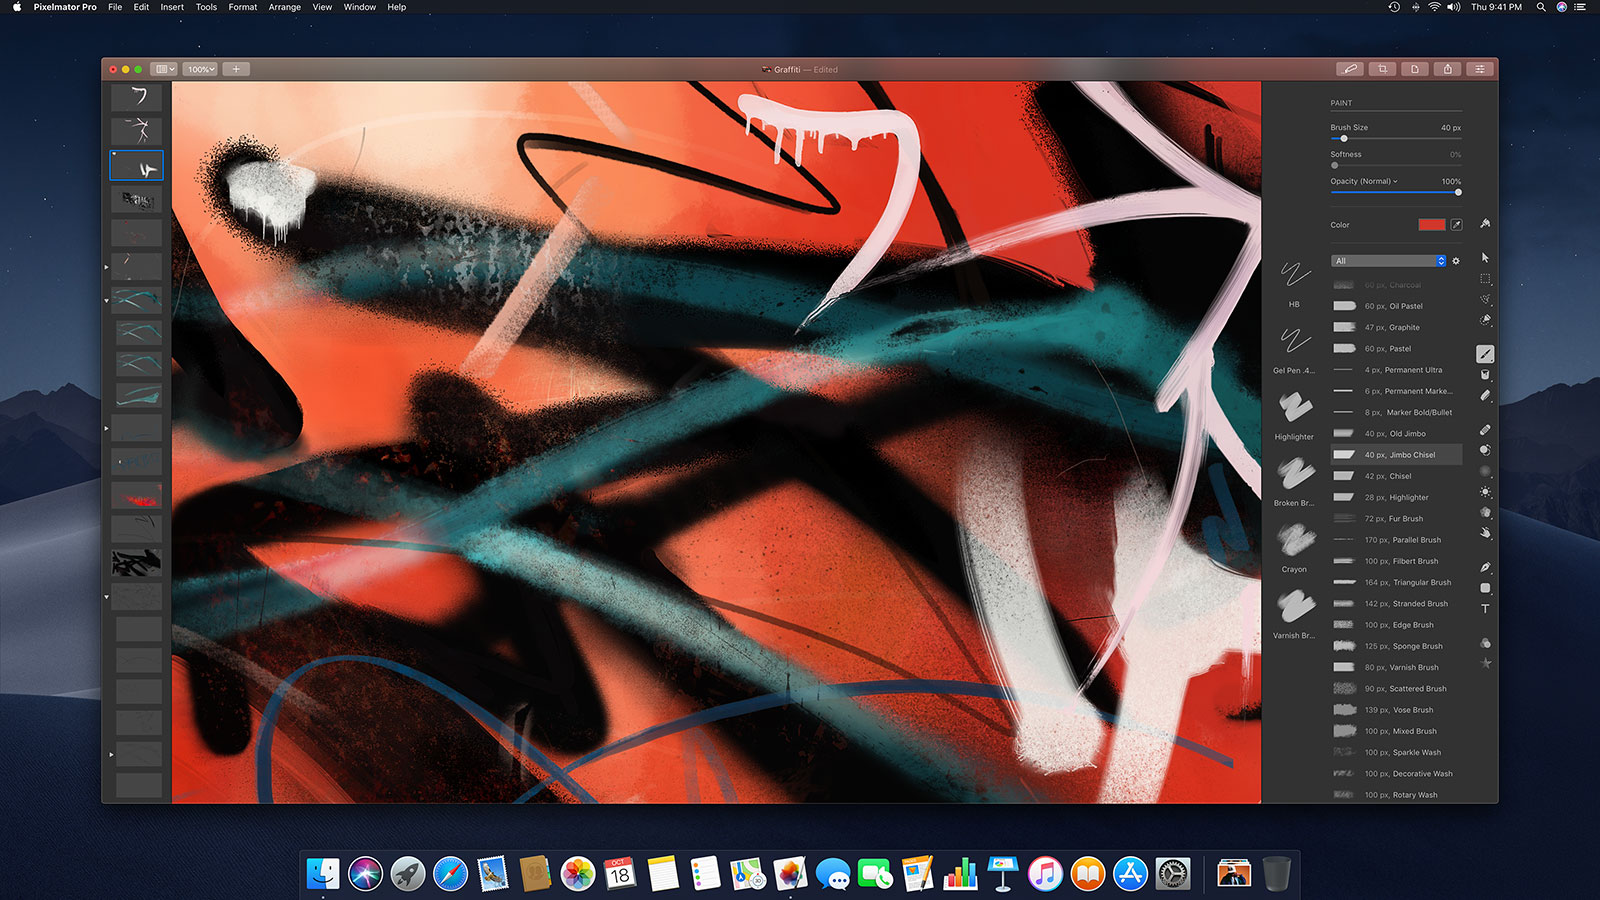 Pixelmator Pro Circuit Design Suite You Can Create Multiple Layers And Arrange The With A Range Of Innovative Features New Technologies Painting In Is More Enjoyable Than Ever Whether Youre Just Scribbling